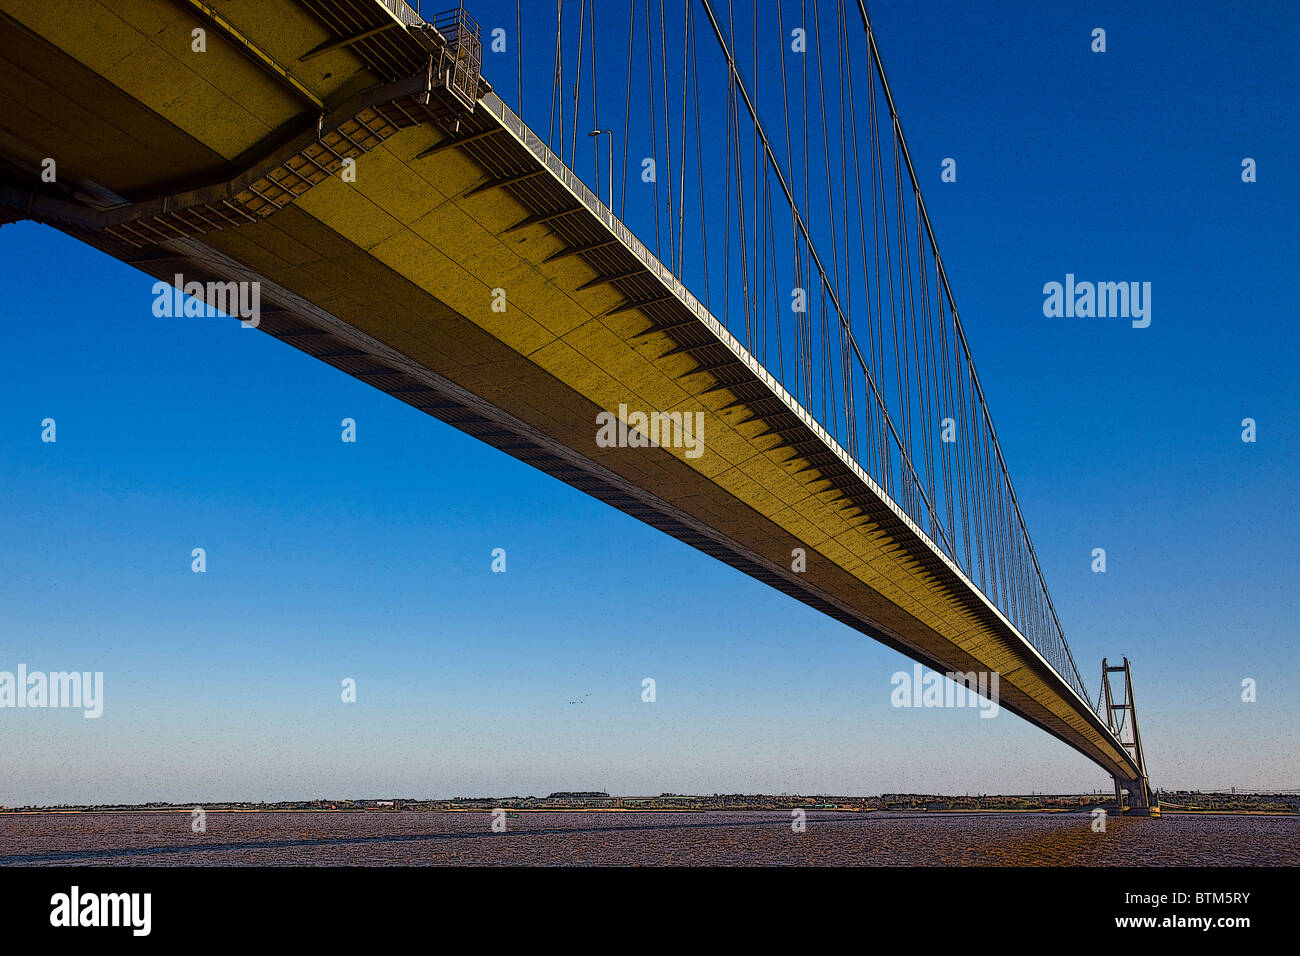 Digitally-altered photograph of Humber Bridge, joining East Yorkshire with North Lincolnshire, England - Stock Image